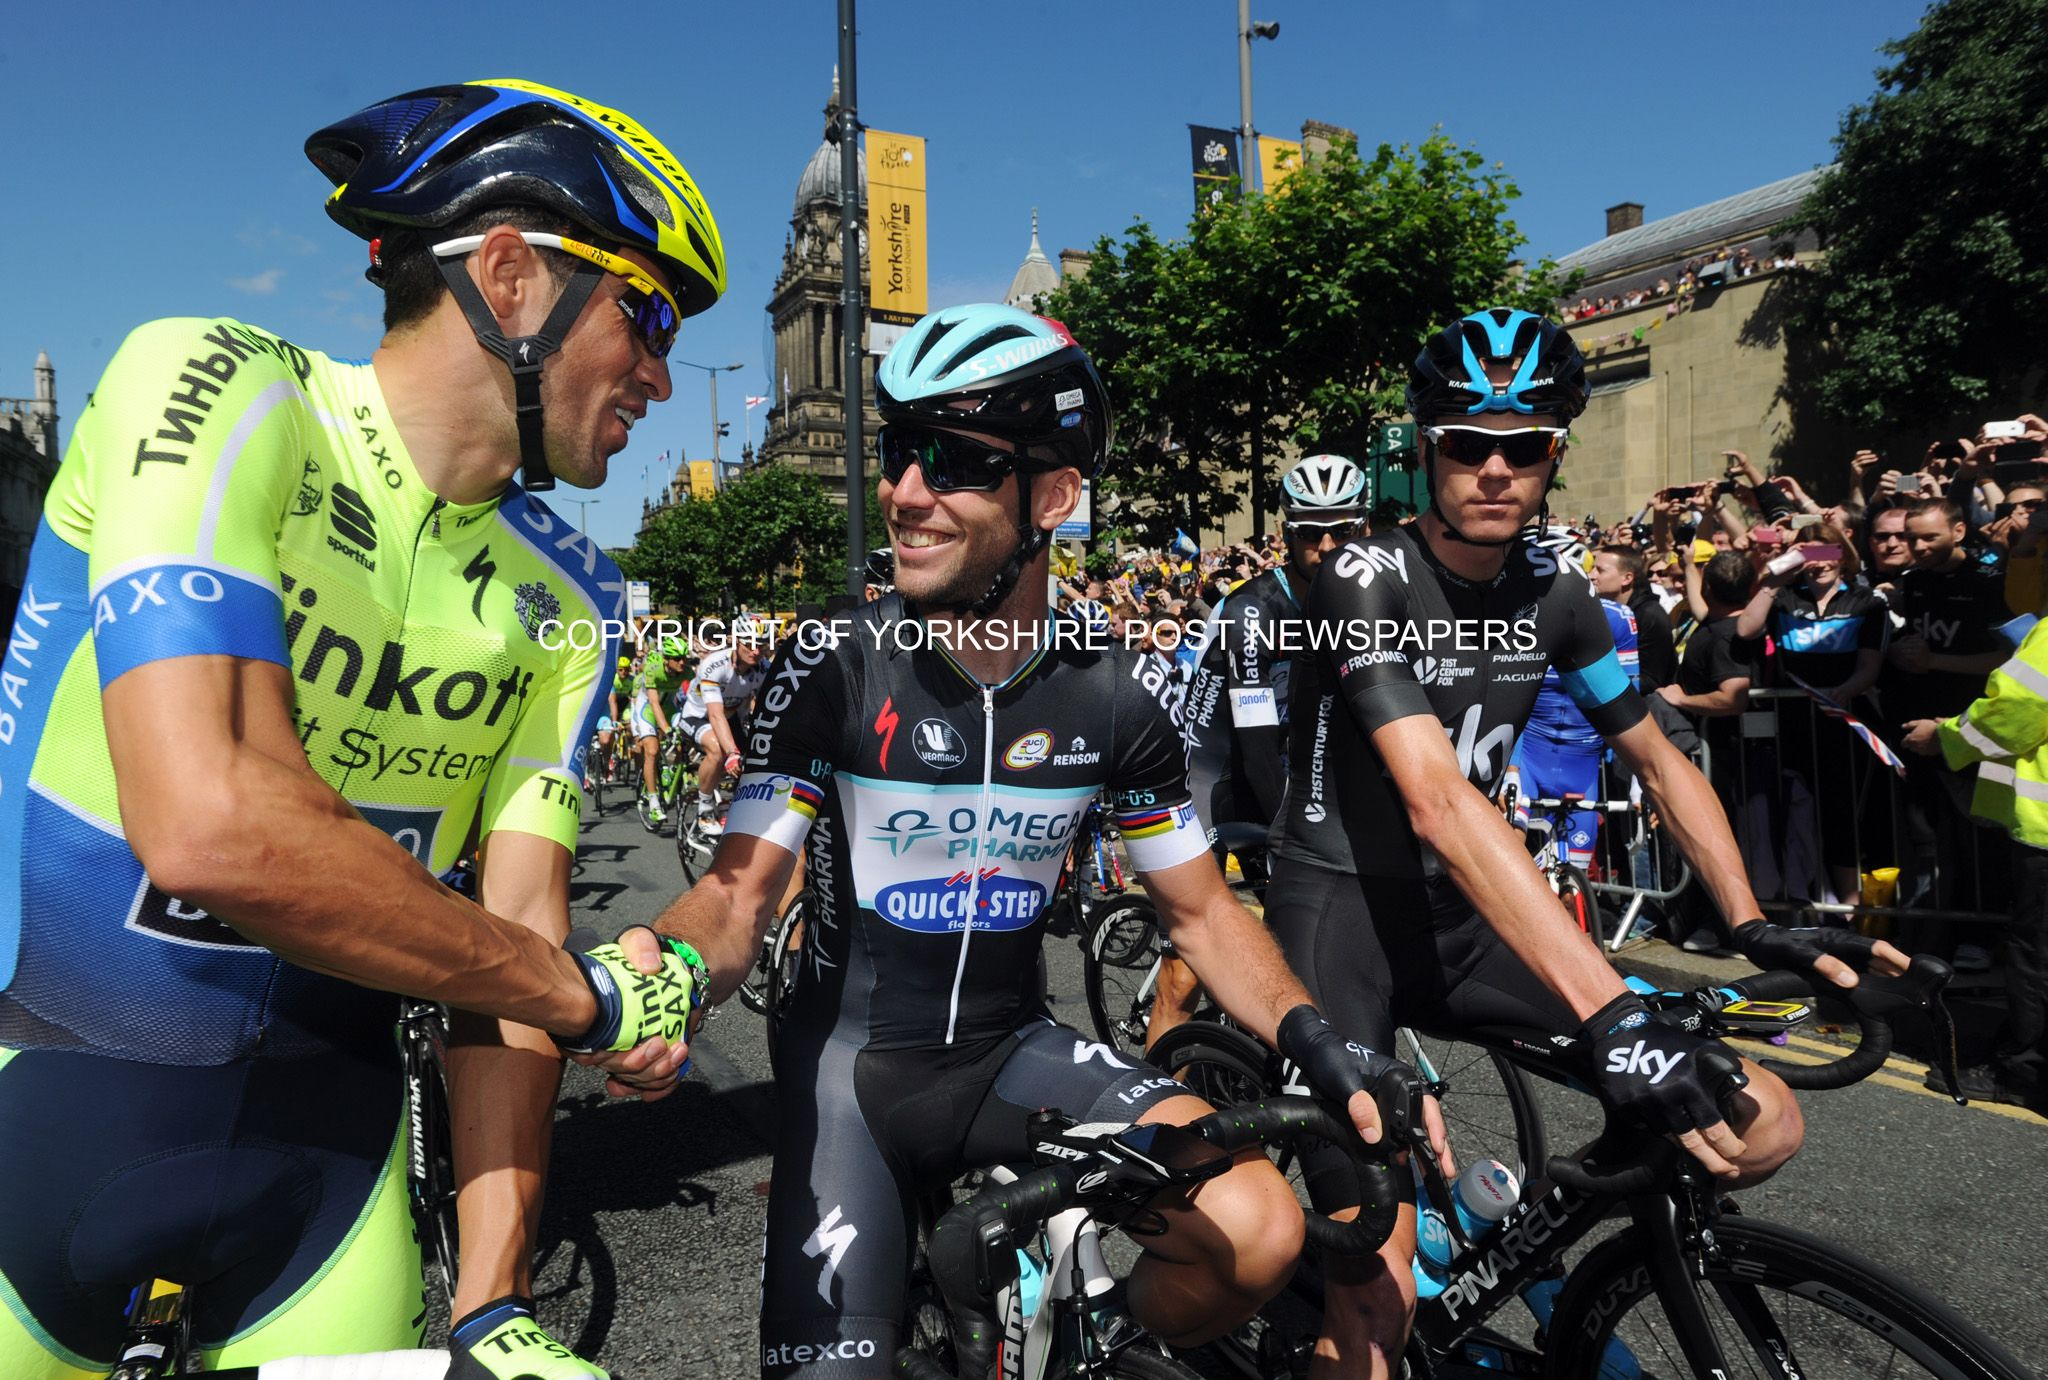 Pin by Yorkshire Post on Your TDF Post  bca84c33d